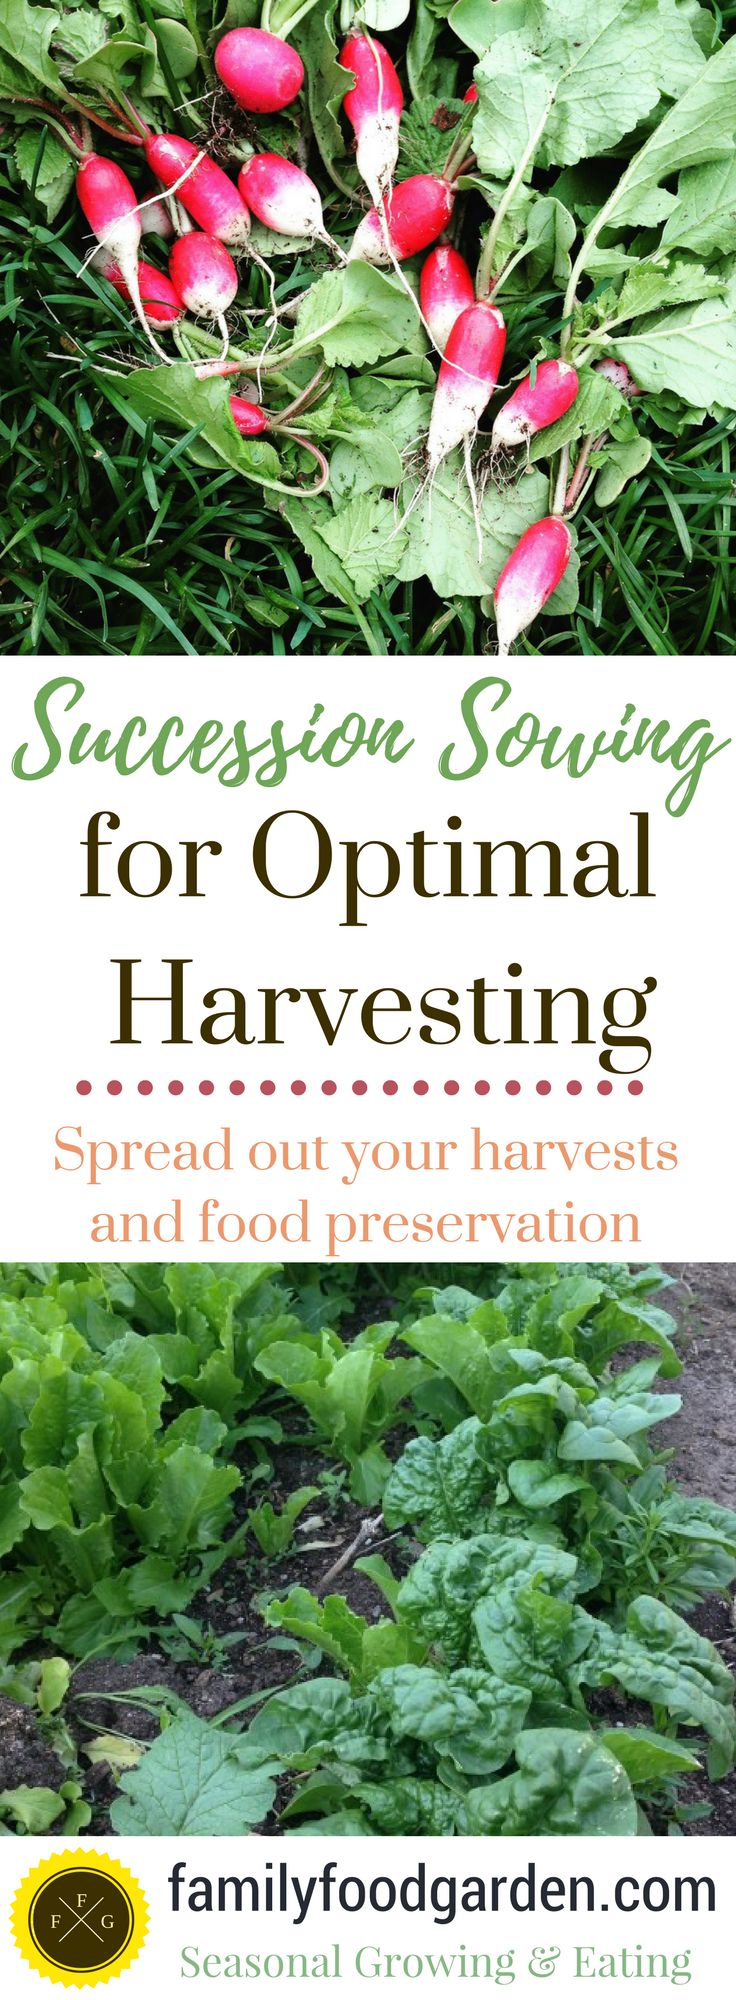 Succession Sowing for Optimal Harvests